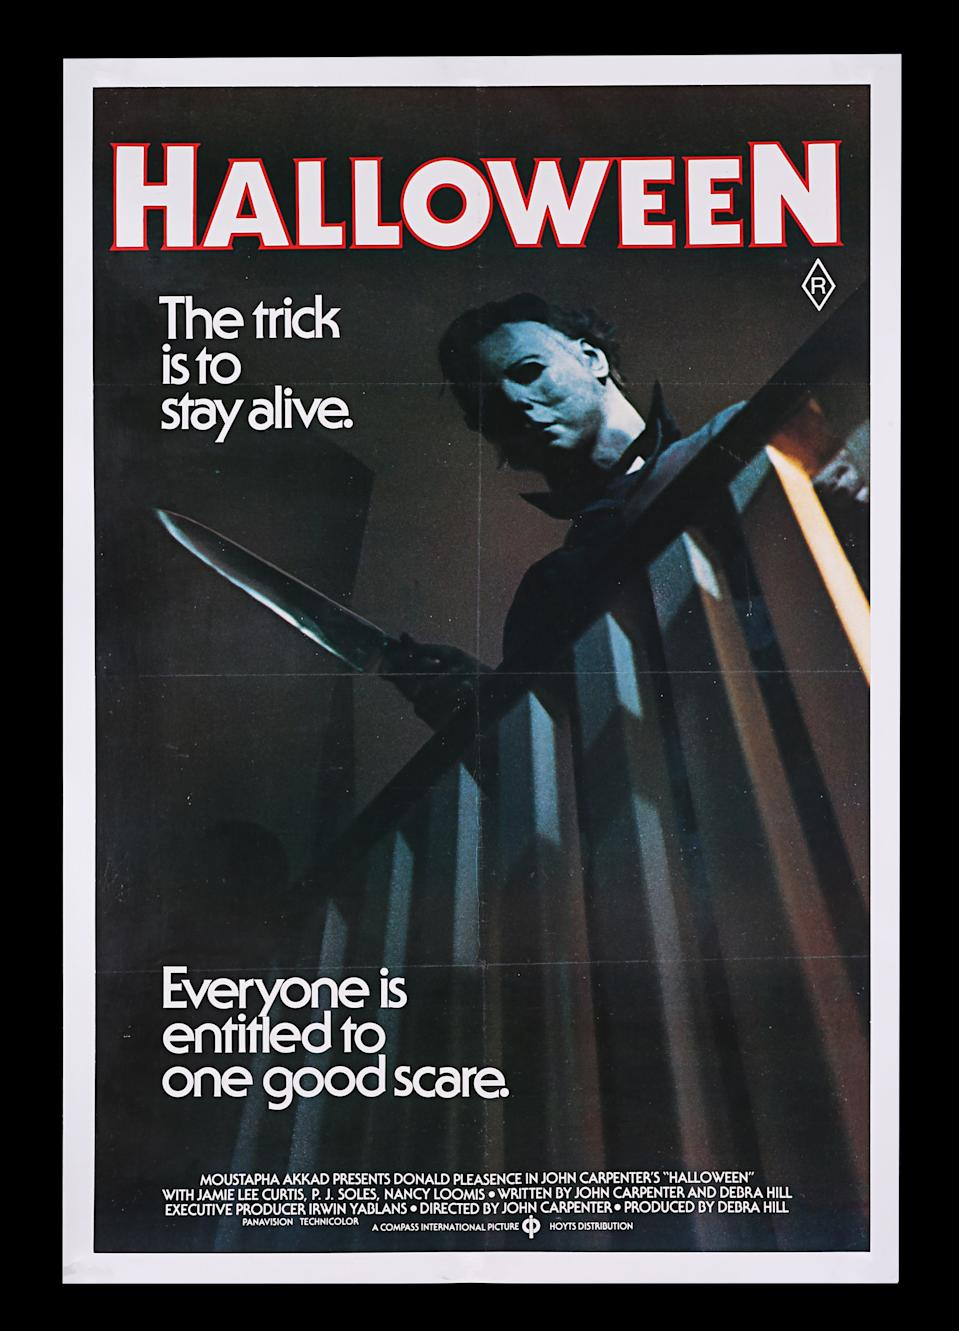 <p>HALLOWEEN (1978) - Bryan Fuller Collection: Australian One-Sheet, 1979 est. £800 - £1,200 (Prop Store)</p>